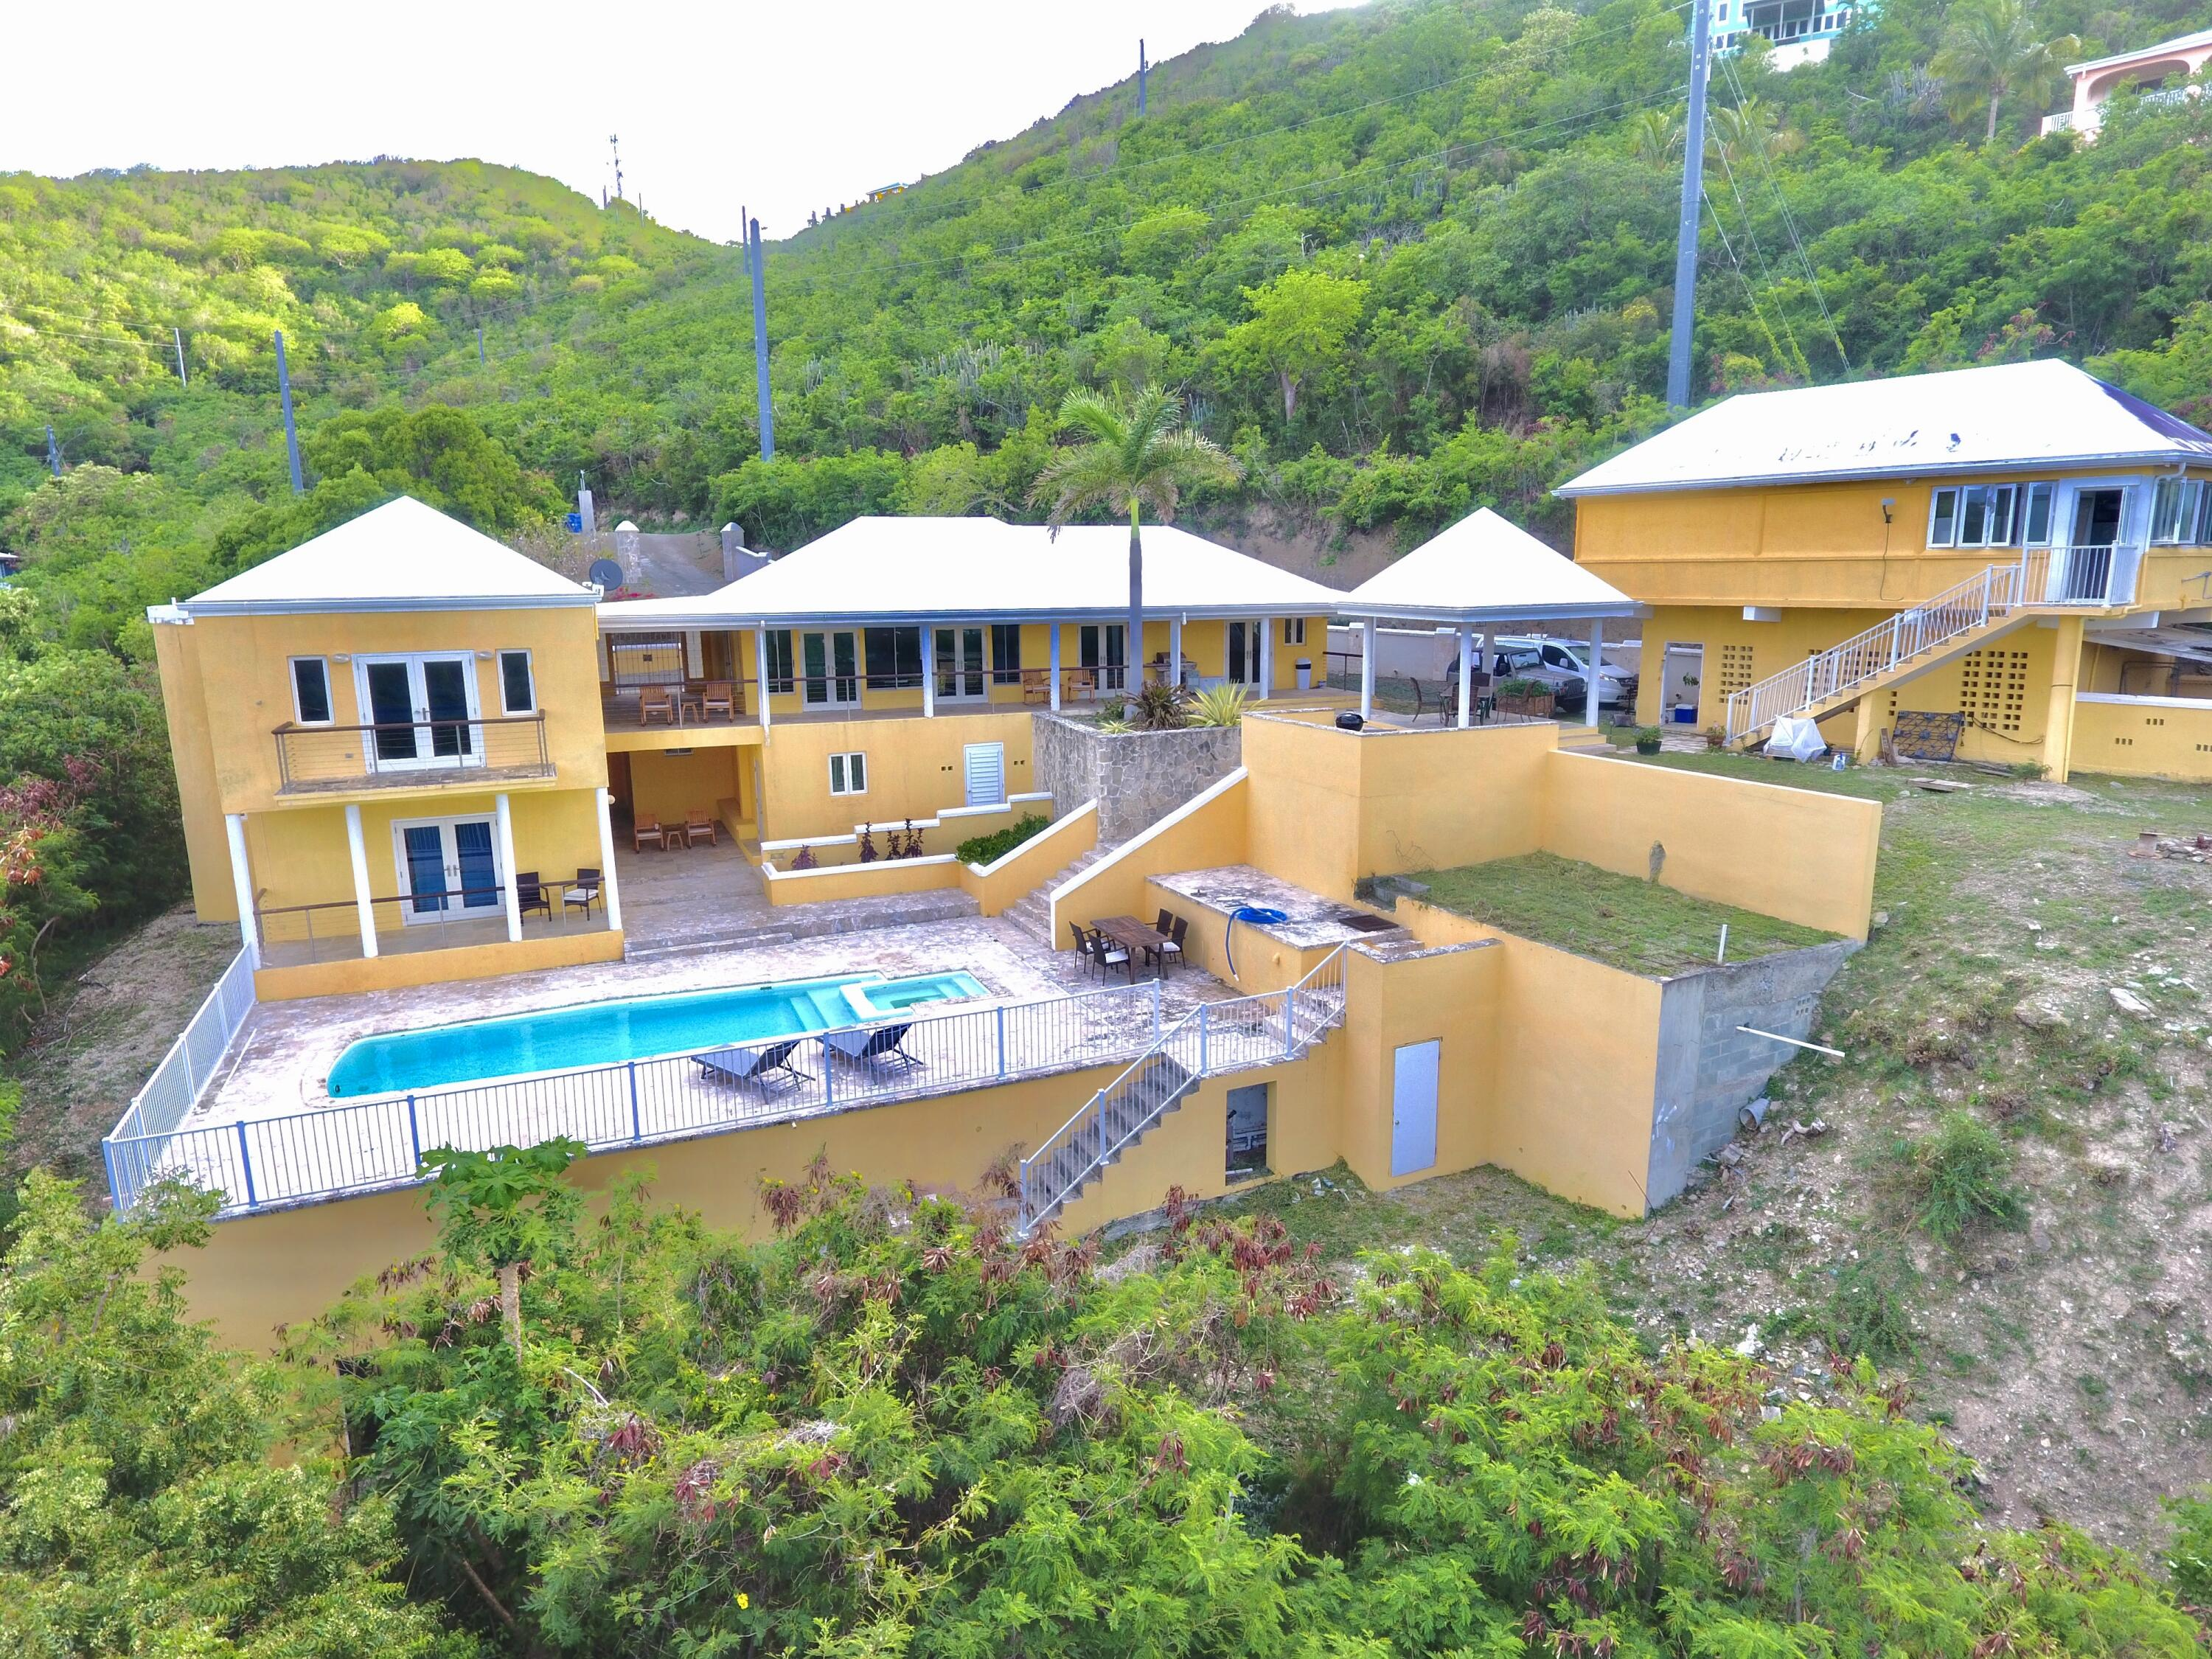 RE/MAX real estate, US Virgin Islands, Hope and Carlton Land Estate, New Listing  Residential  Hope  Carton H EB